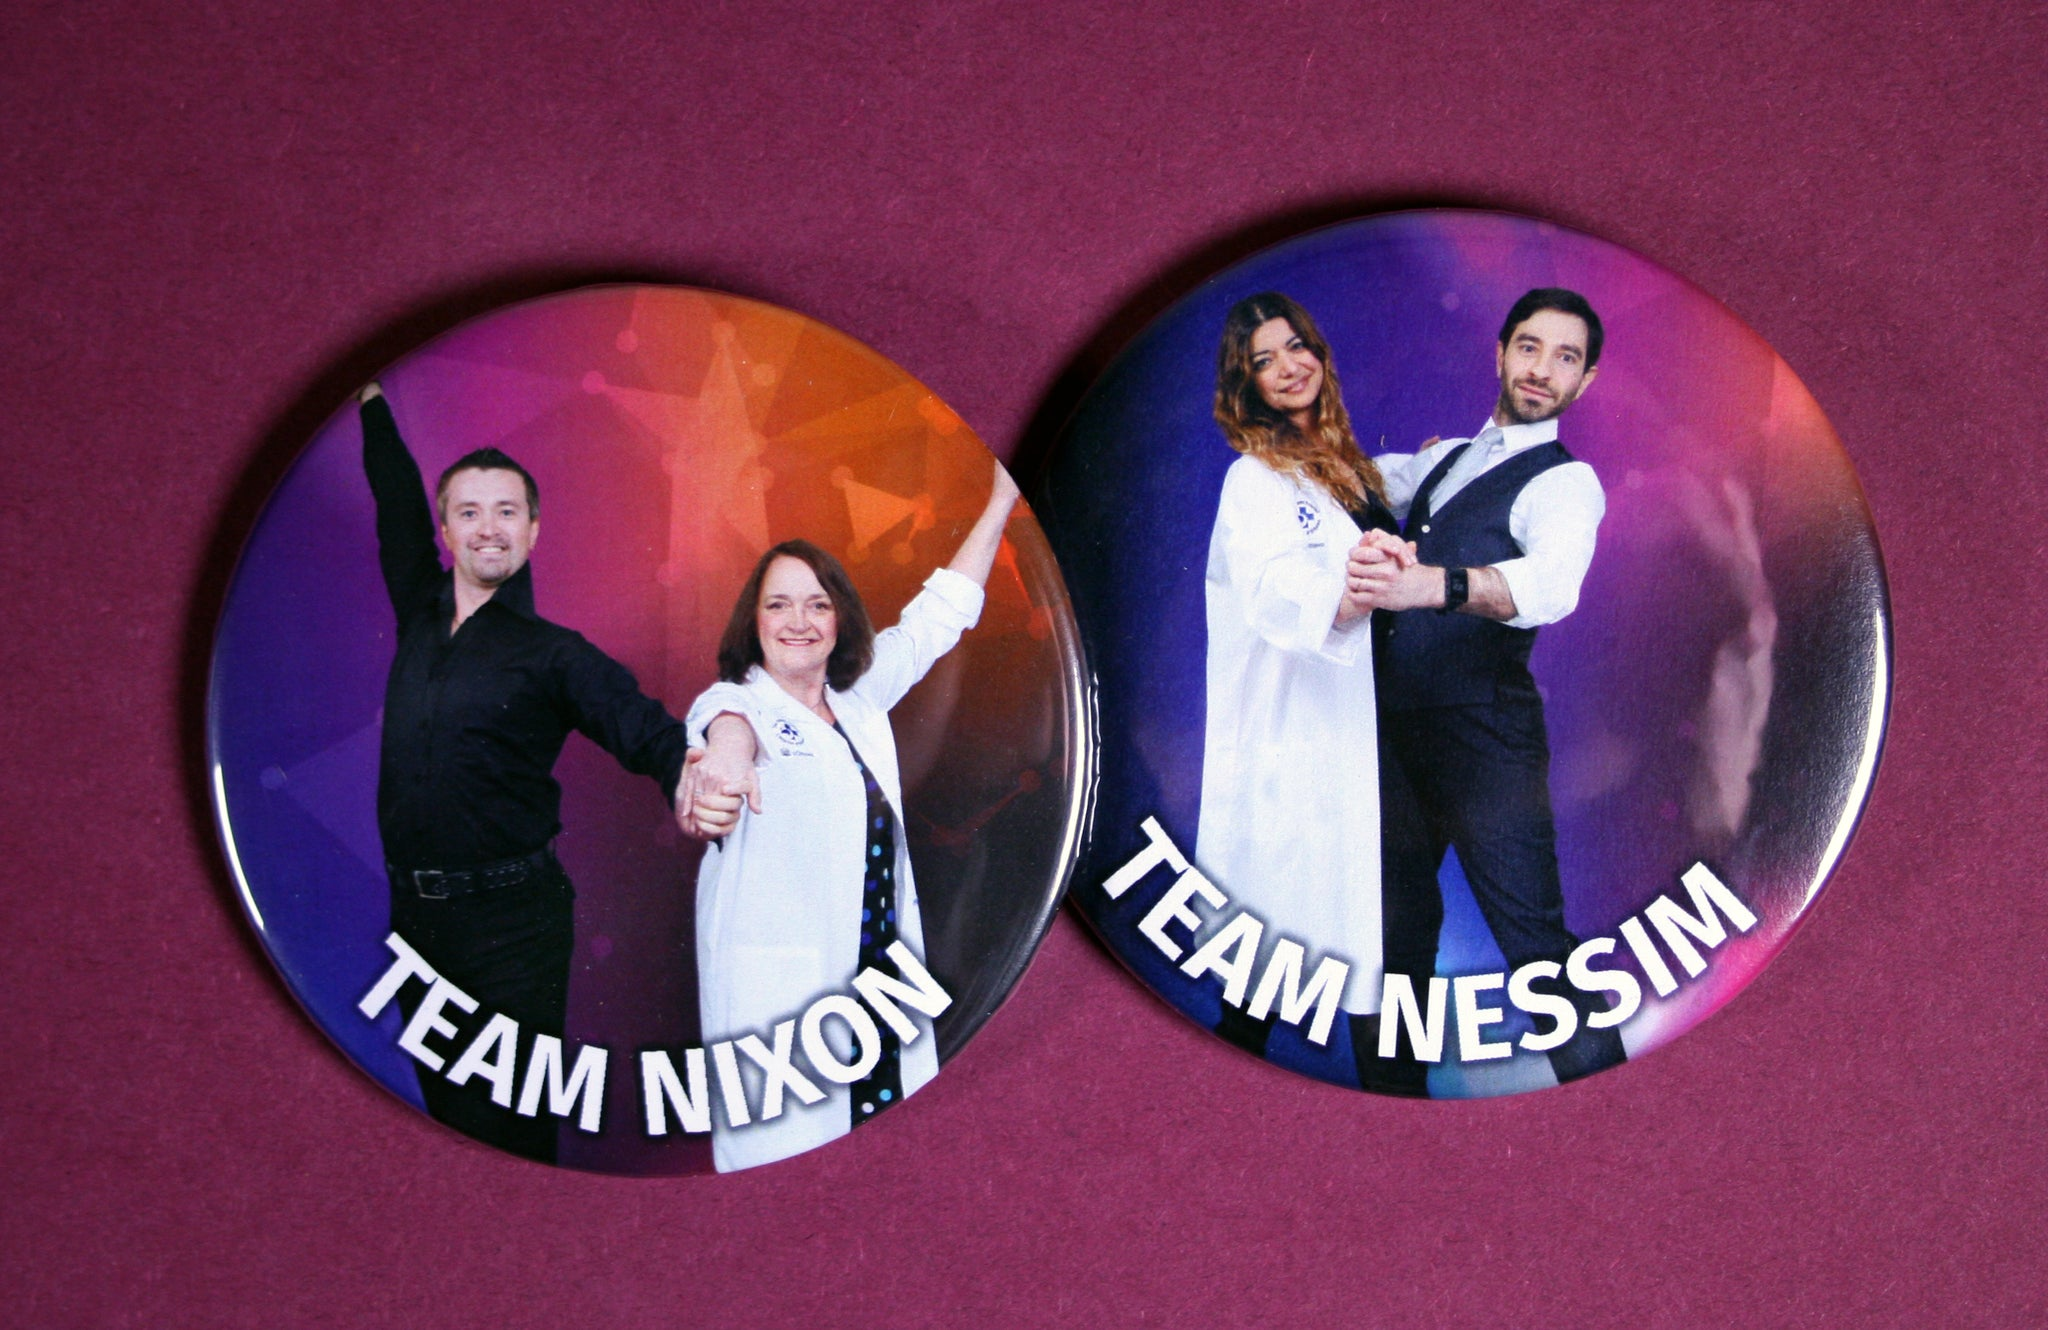 ottawa hospital gala custom fundraising buttons